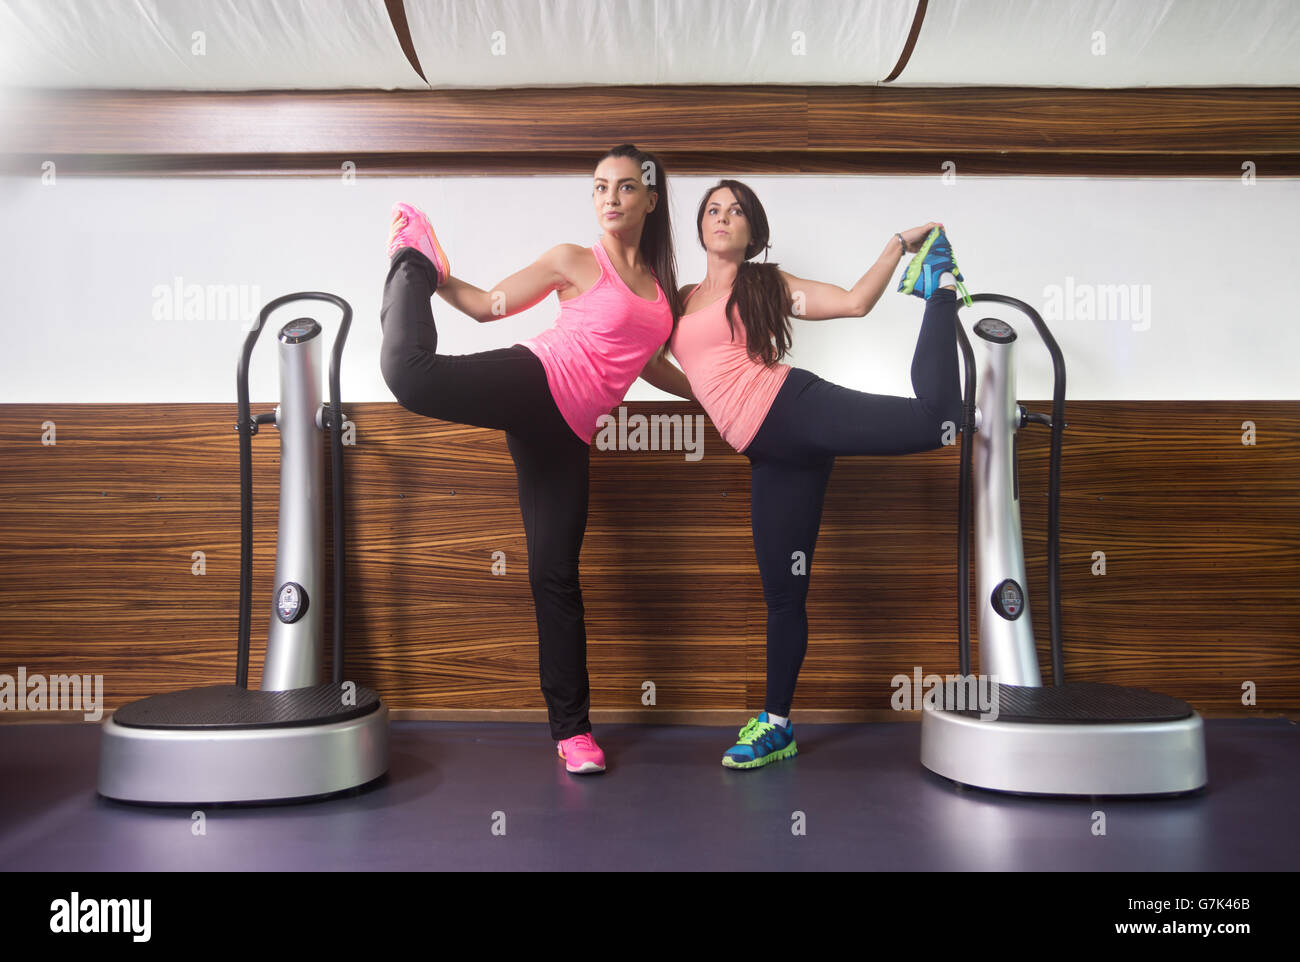 Two women standing on one leg holding feet stretching. Similar identical pose, mirroring each other. - Stock Image